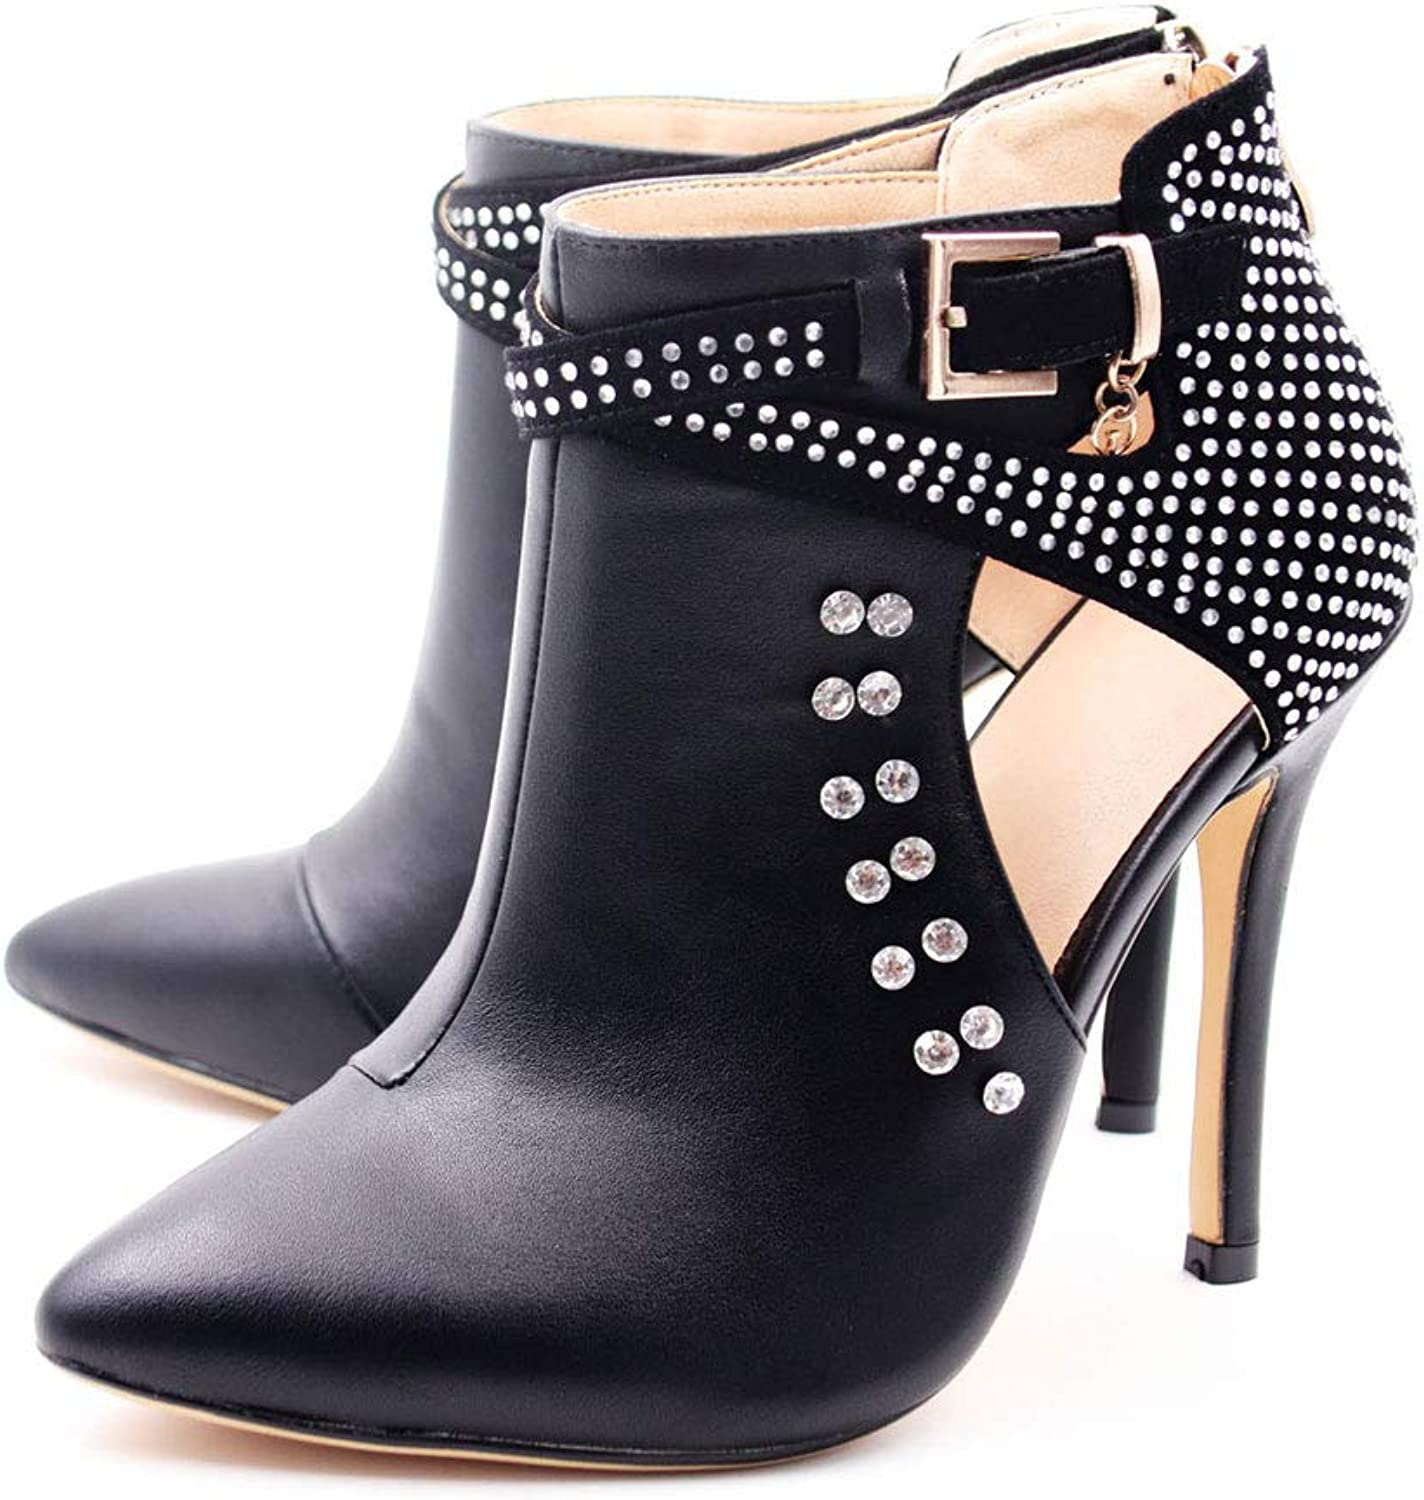 Hinyyrin Ankle Boots for Women,Bare Legged Pointed Women's Boots, Rhinestone Booties Black